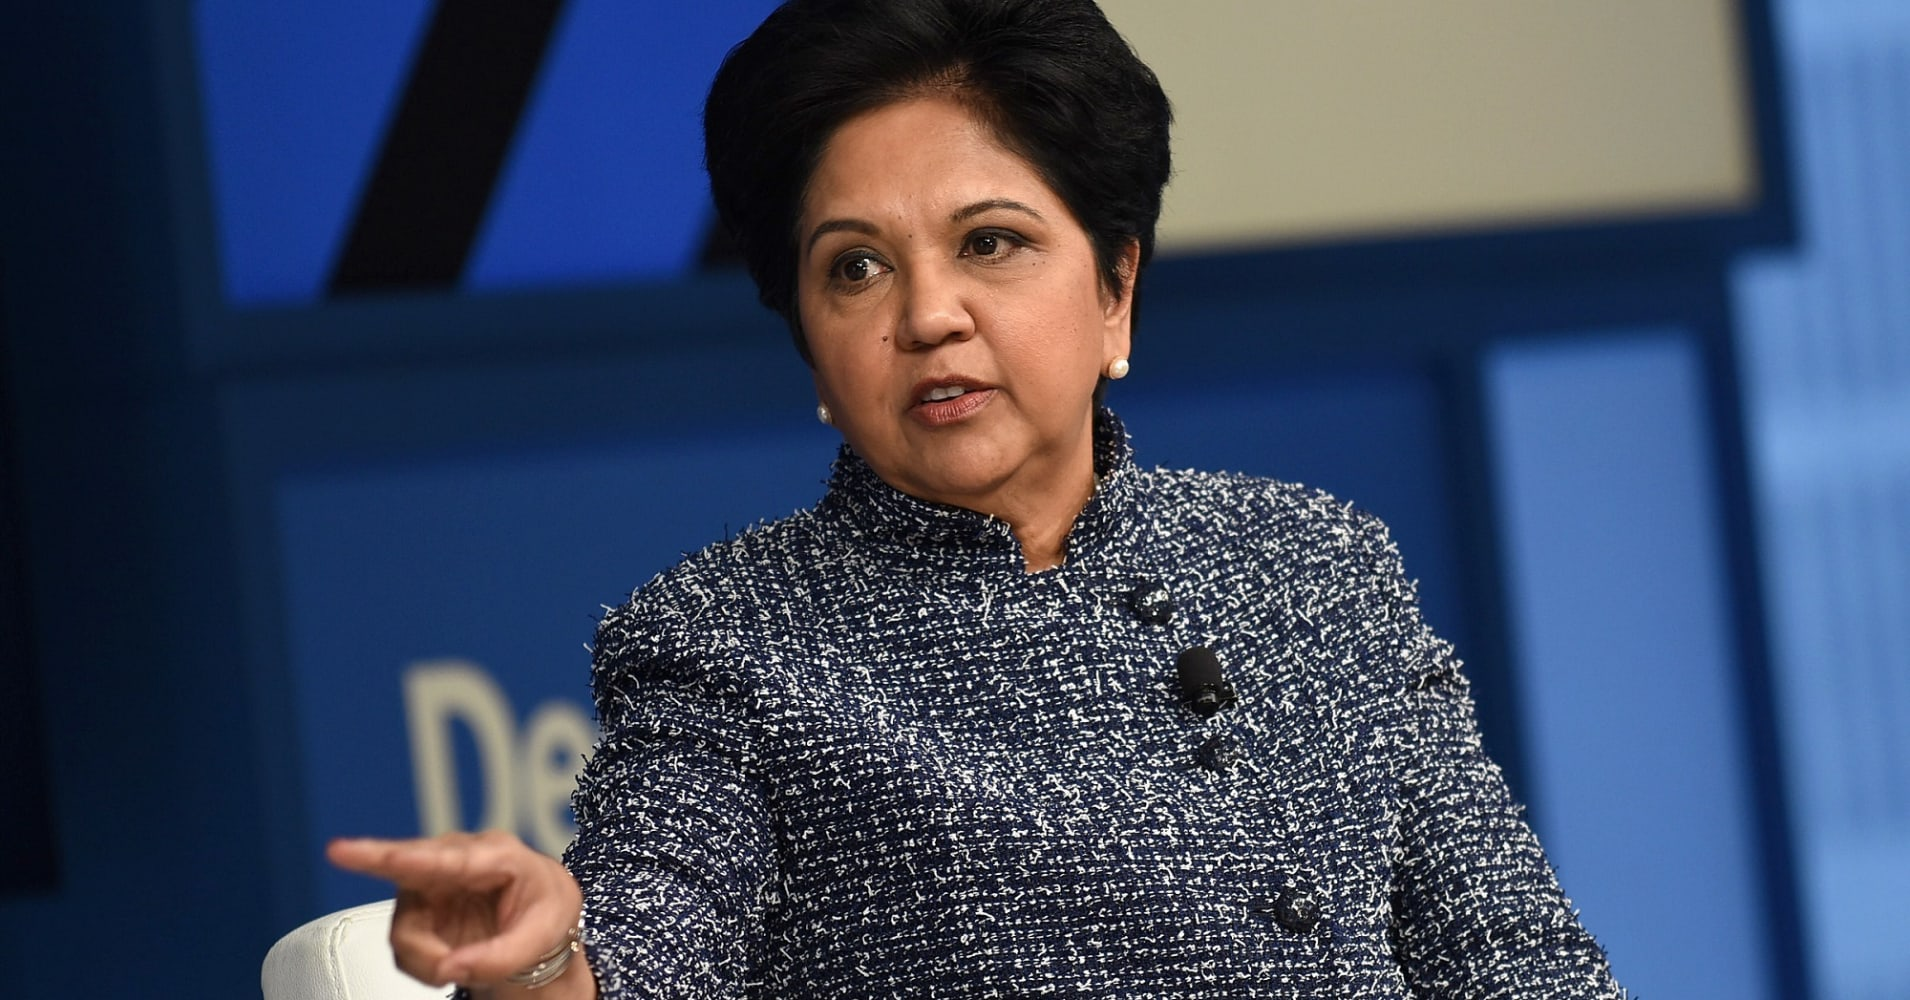 White House considering former PepsiCo CEO Indra Nooyi to head World Bank: New York Times